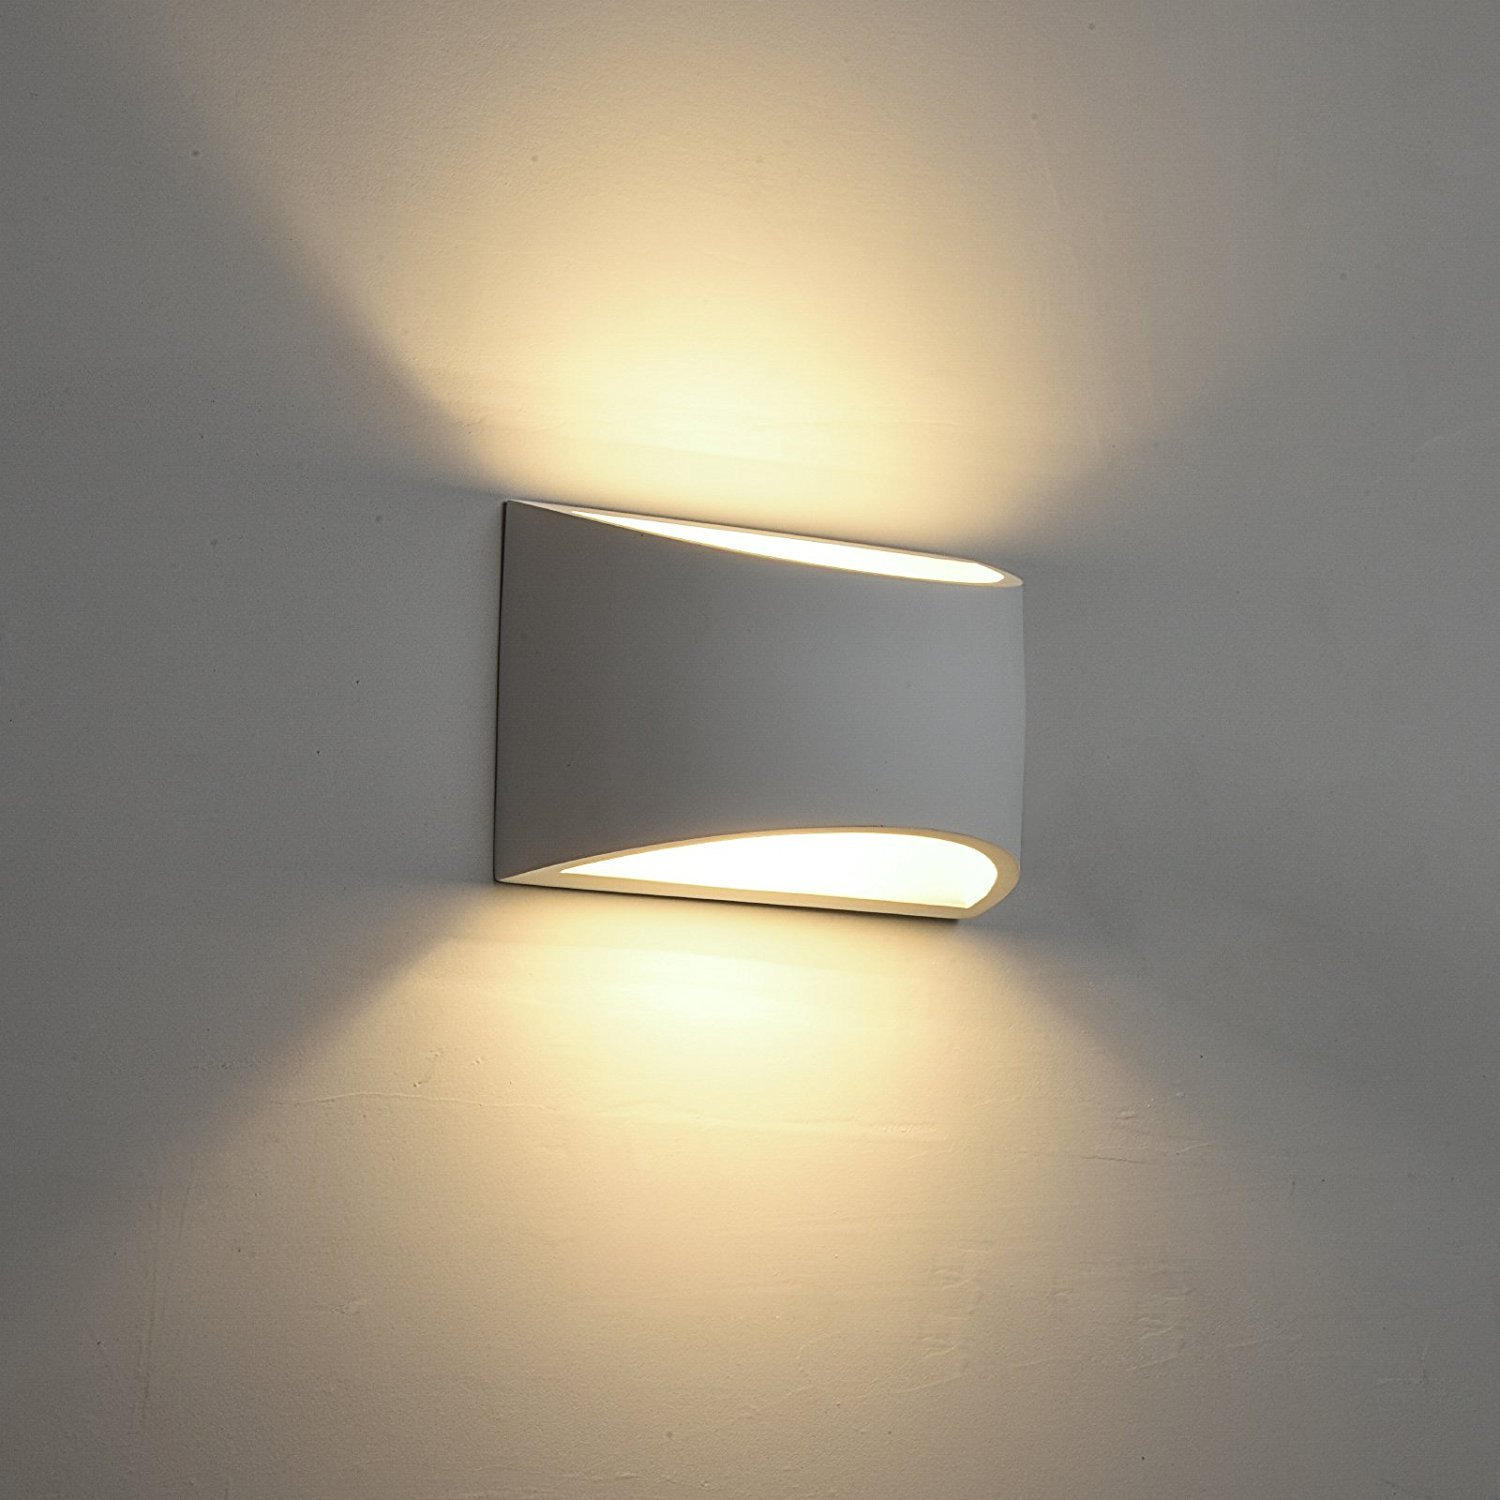 Deckey wall light led up and down indoor lamp uplighter downlighter warm white amazon co uk lighting